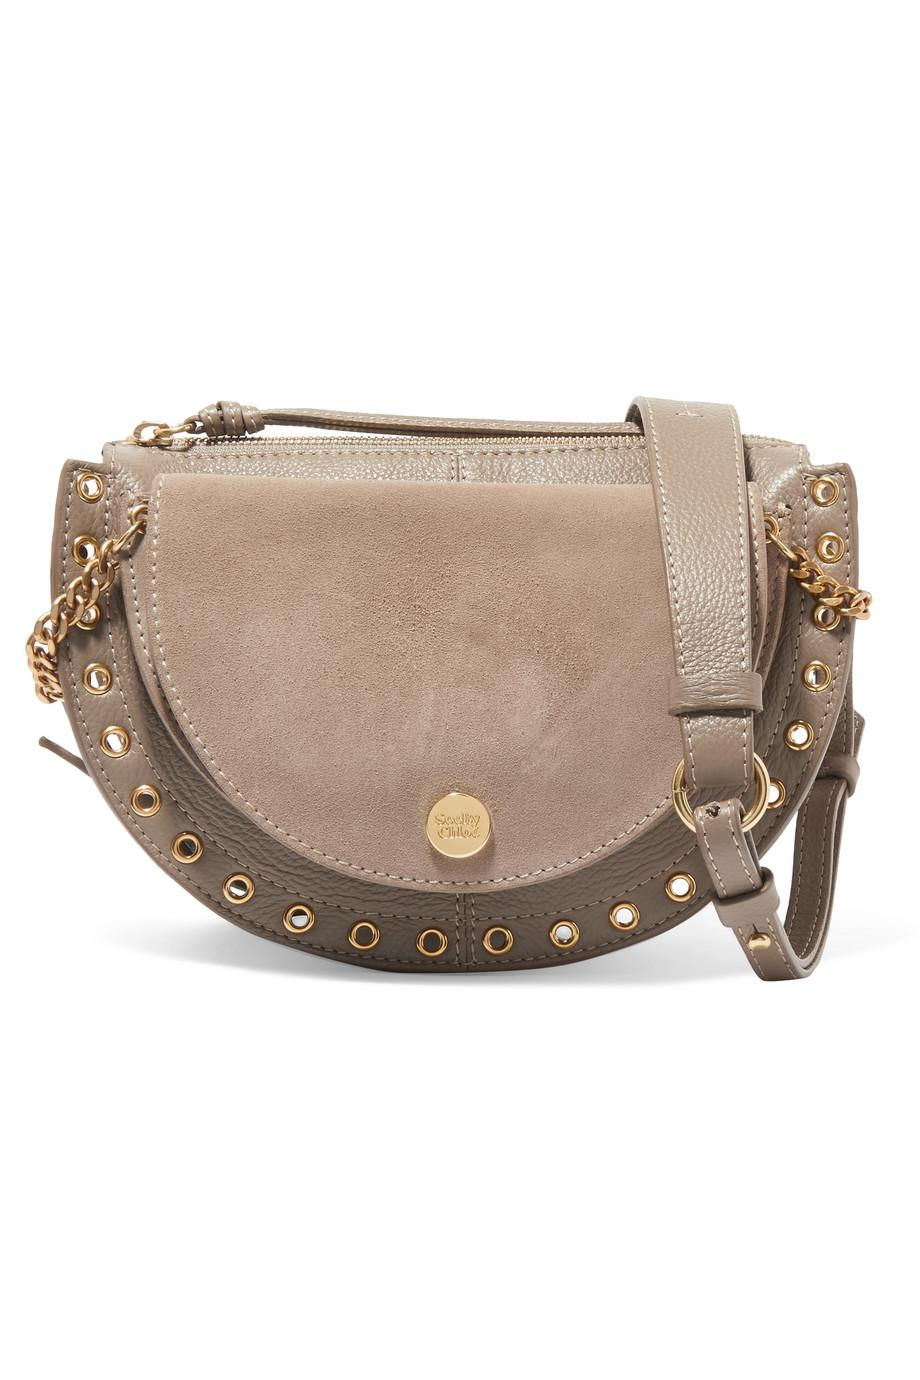 Kriss Mini Eyelet-embellished Textured-leather And Suede Shoulder Bag - Charcoal See By Chlo gXOctGw